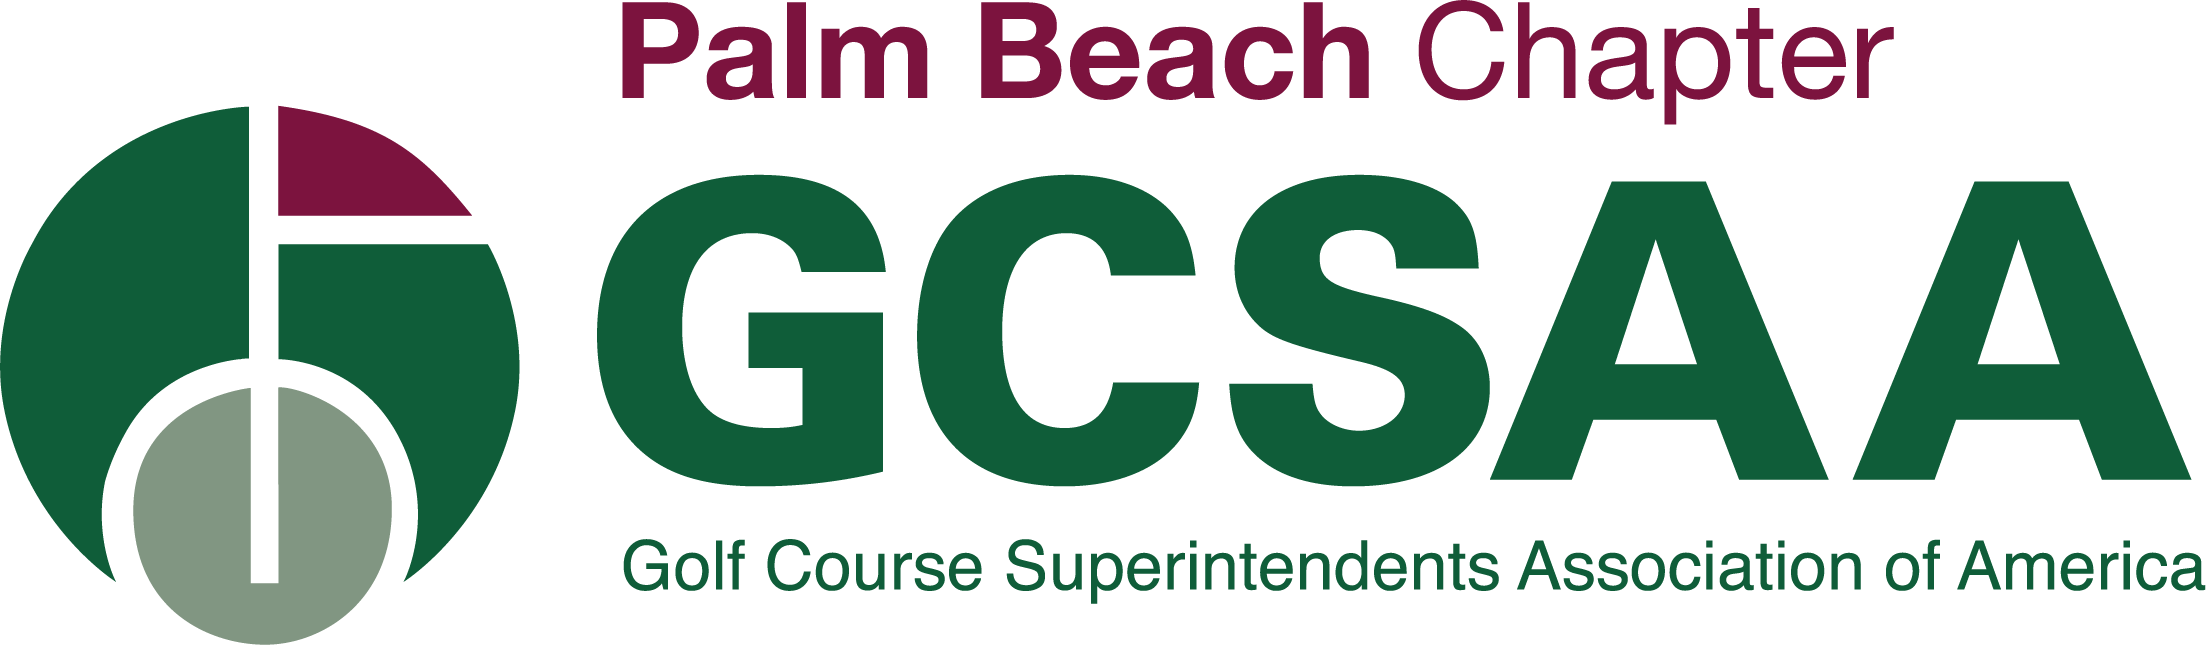 Palm Beach GCSAA